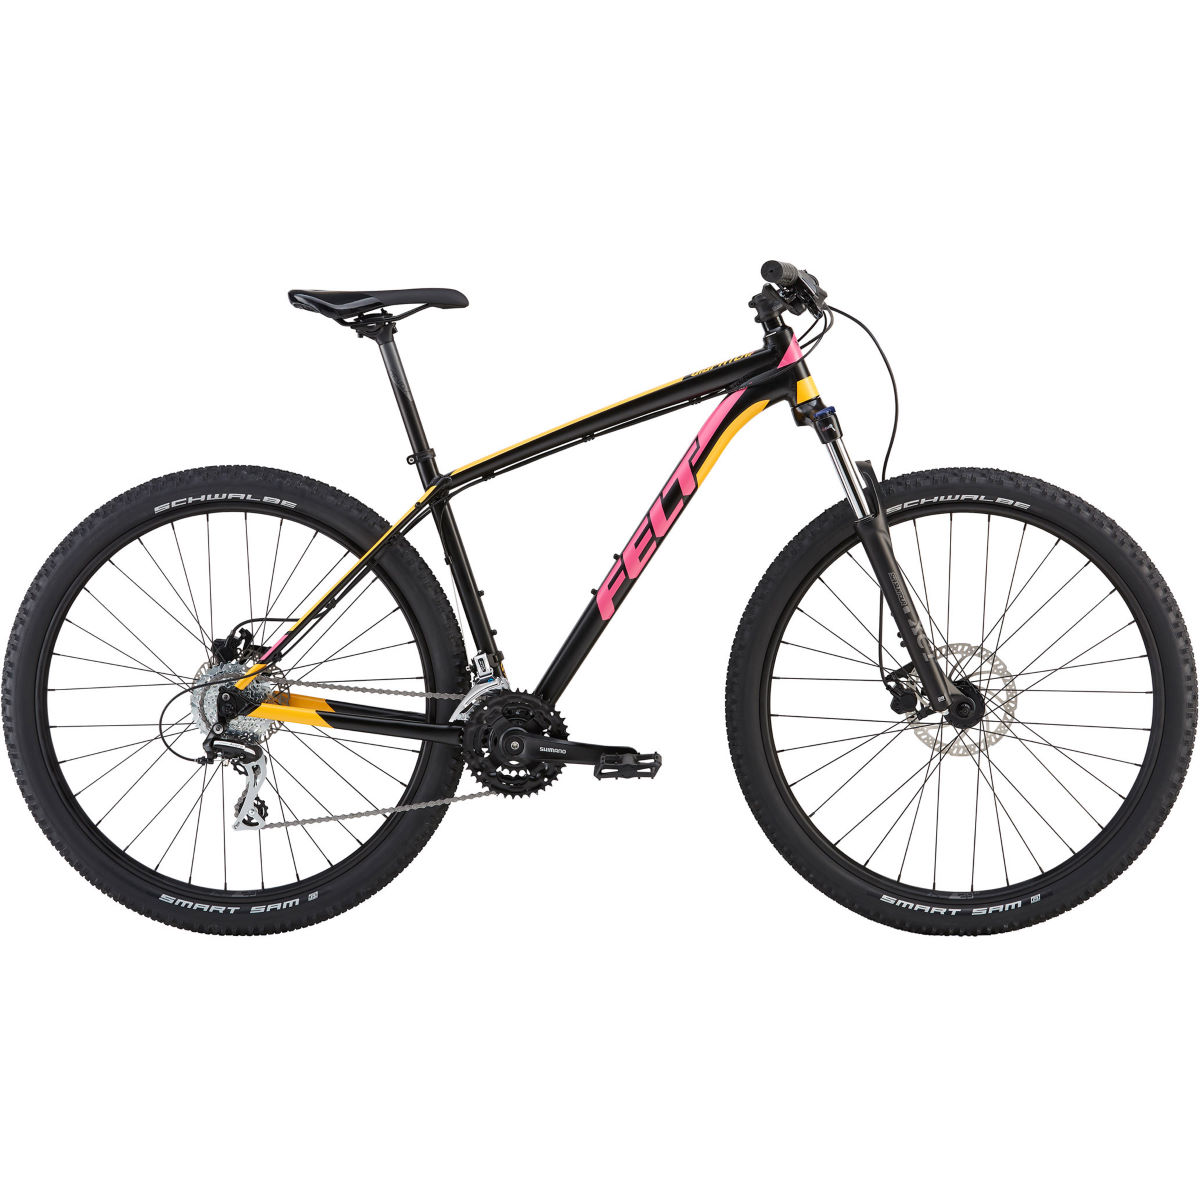 VTT semi-rigide Felt Dispatch 9/80 XC (2018) - 18'' Stock Bike